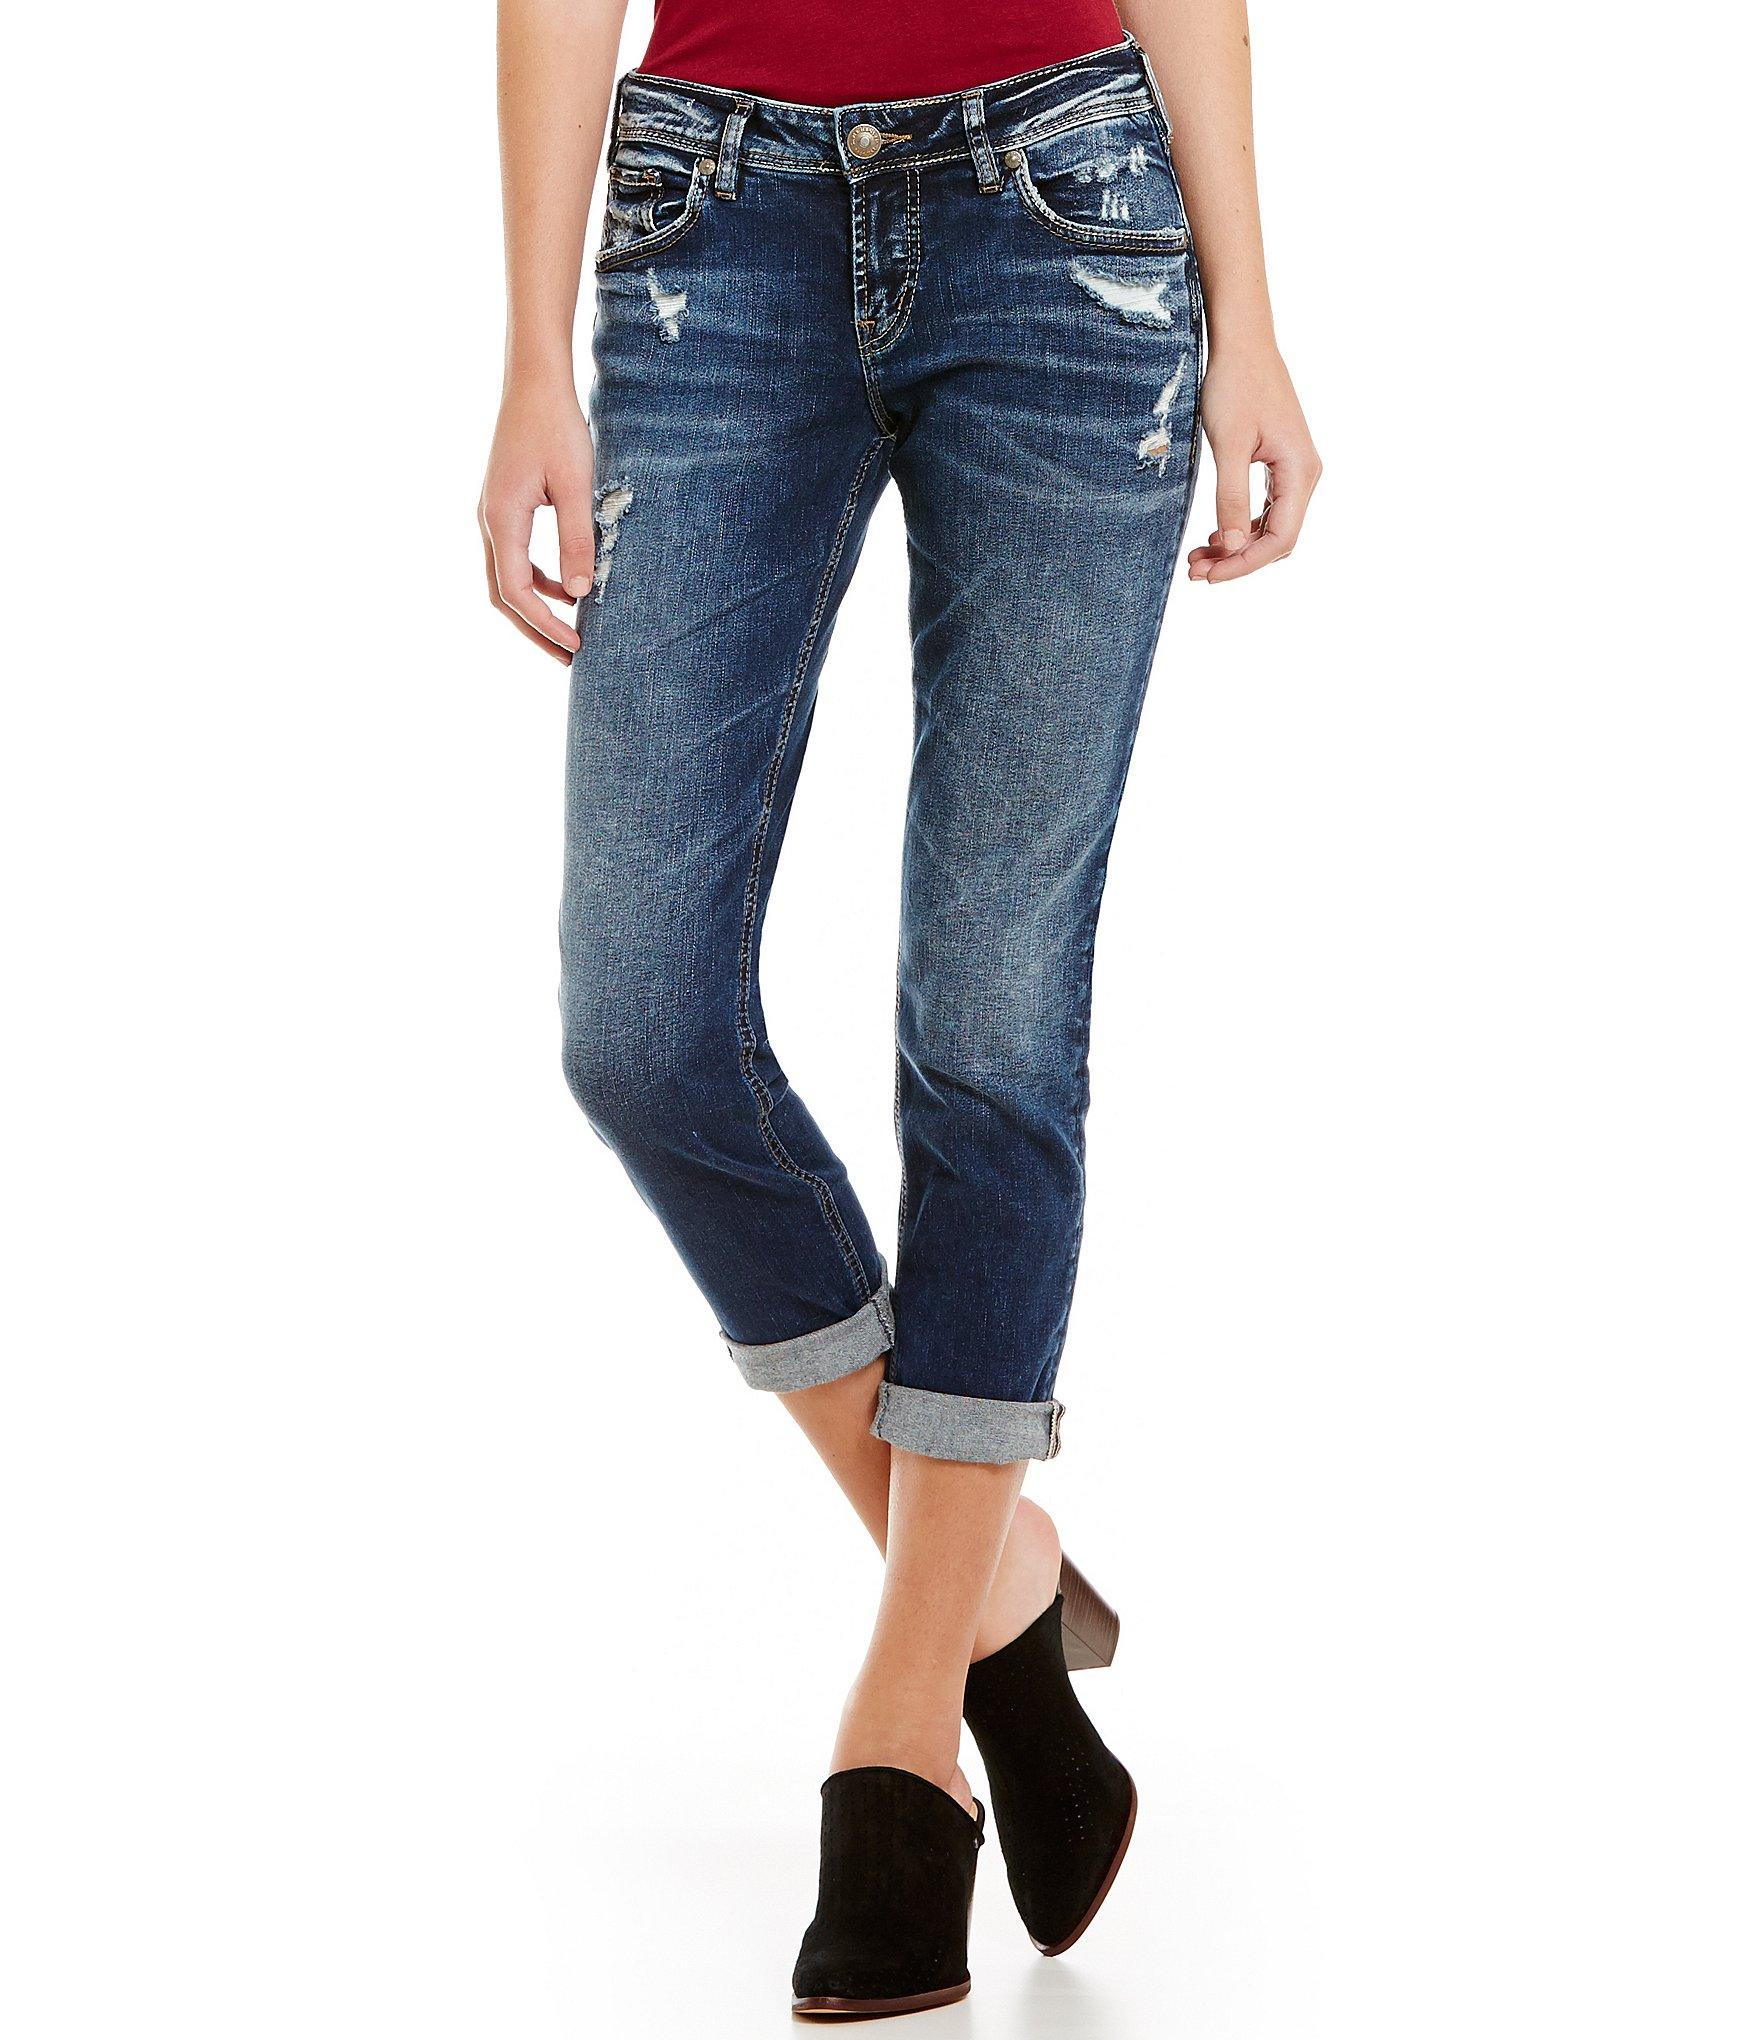 Silver jeans co. Sam Super Stretch Distressed Cuffed Boyfriend